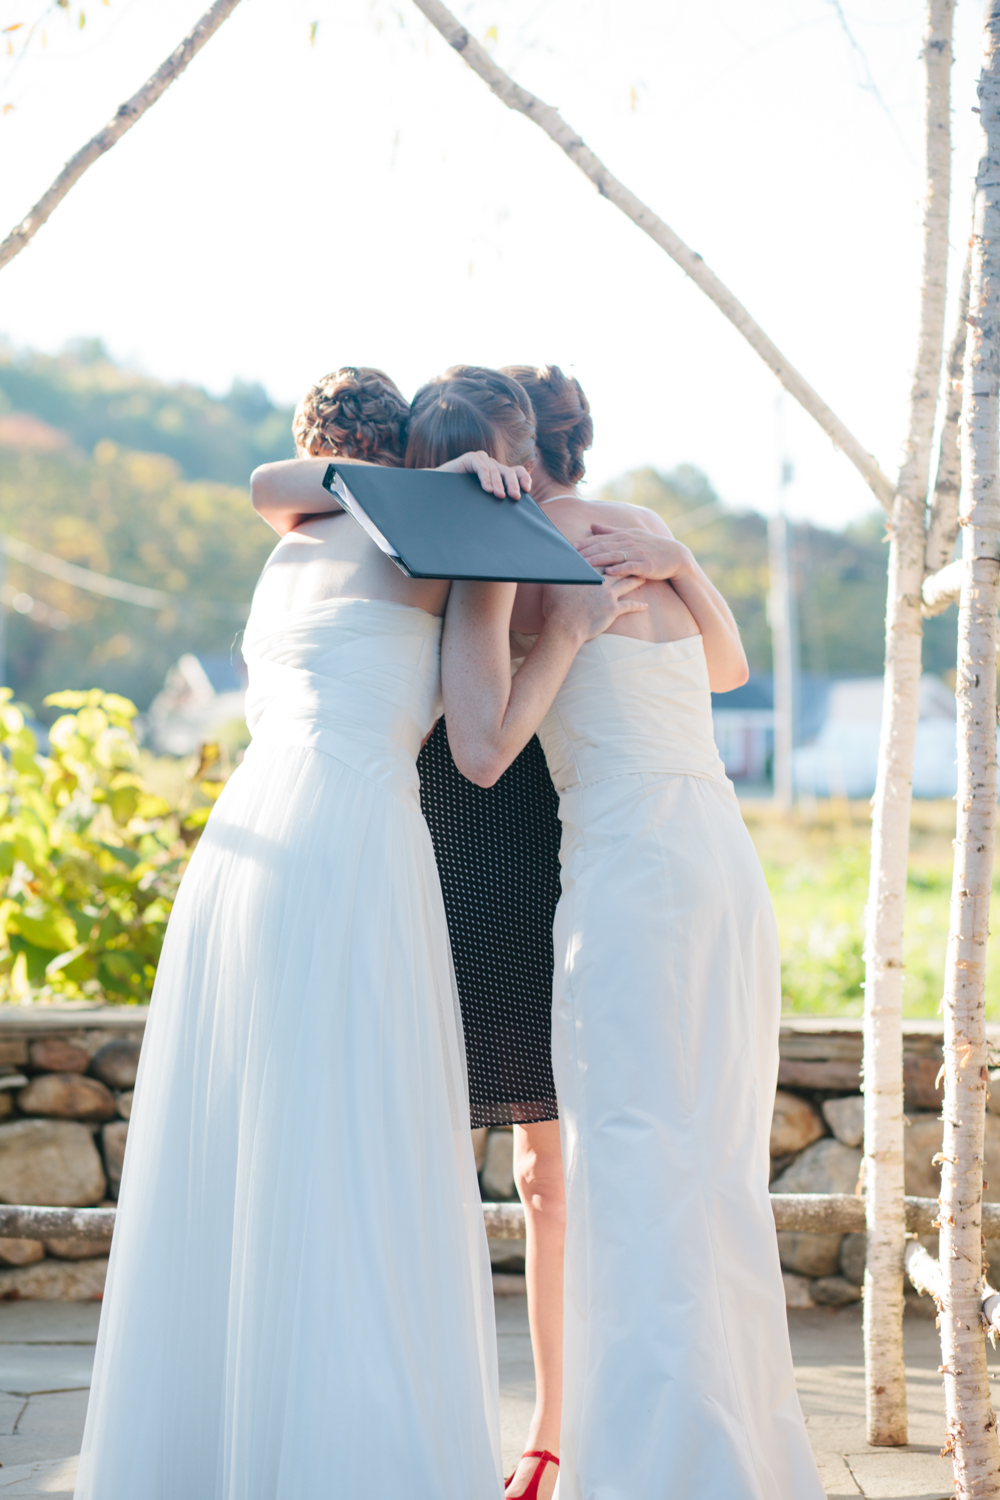 And a hug with their officiant/great friend.